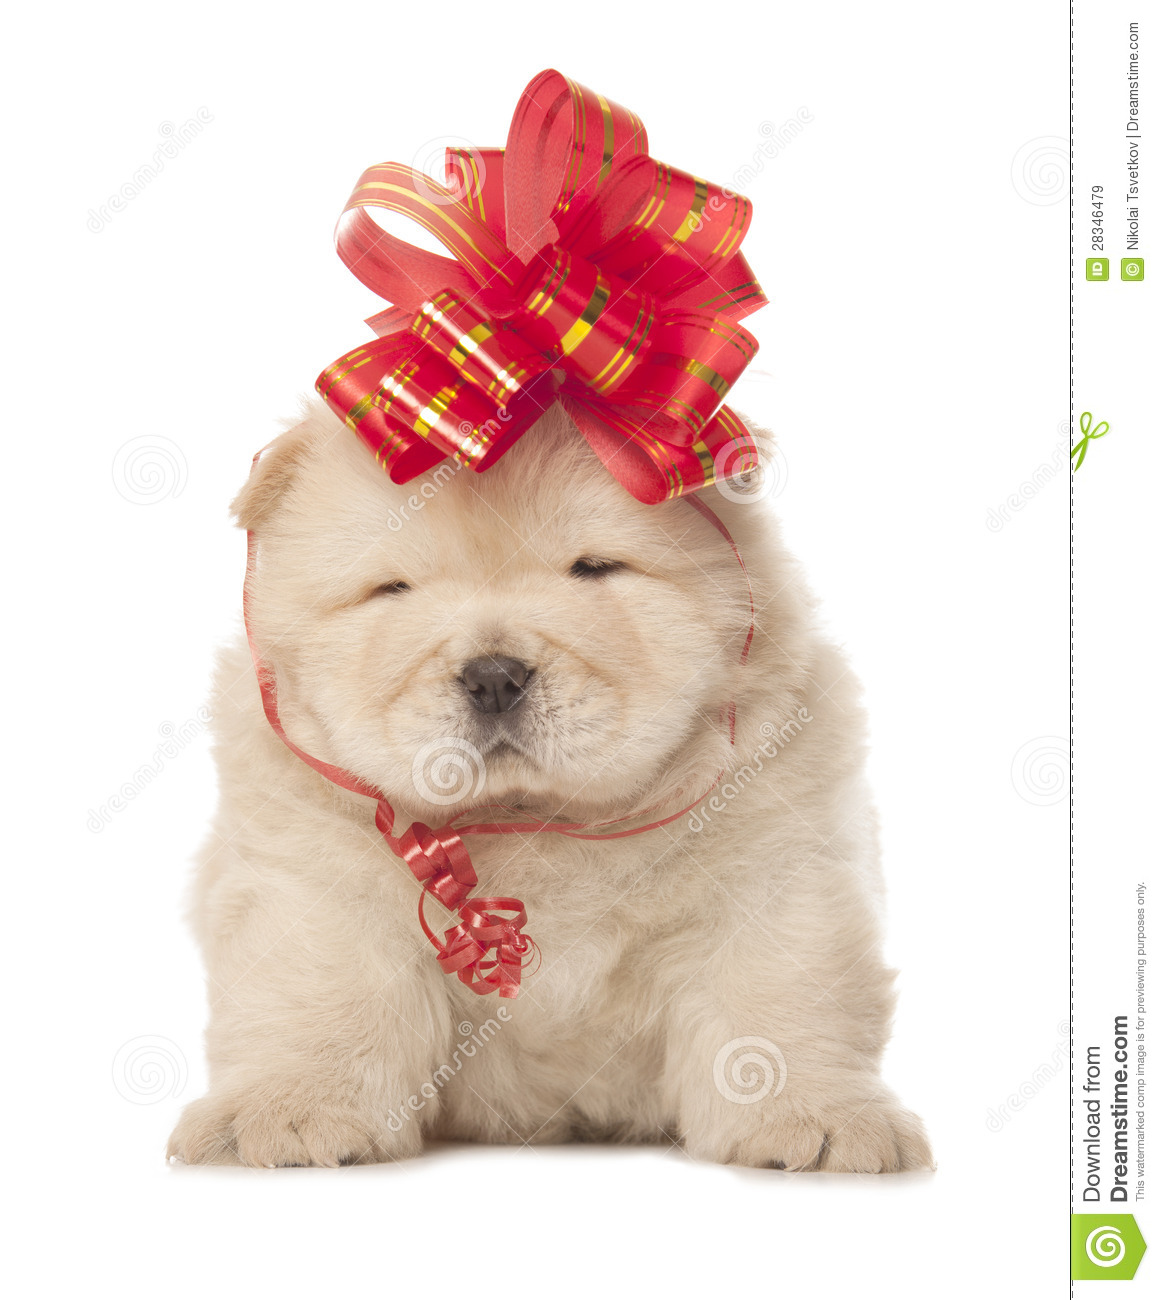 Chow-chow Puppy With Big Red Bow Stock Image - Image of